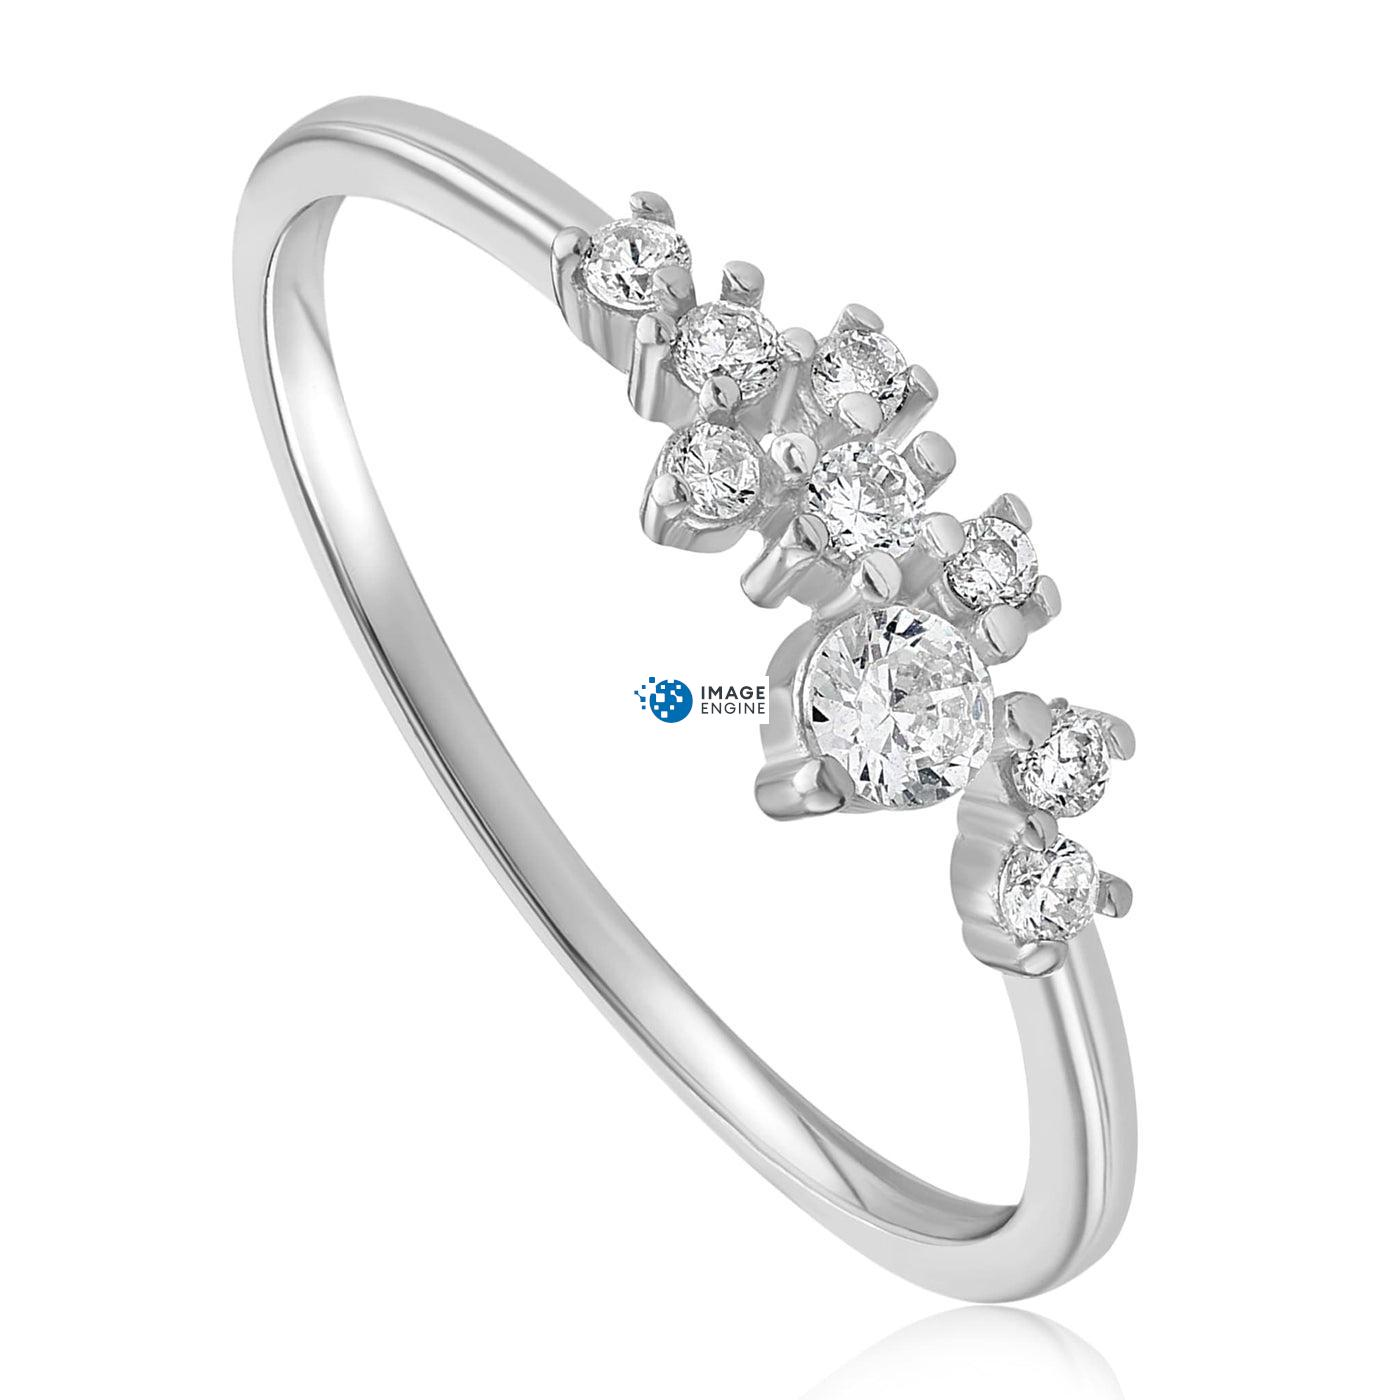 Sasha Sparkle Ring - Three Quarter View - 925 Sterling Silver